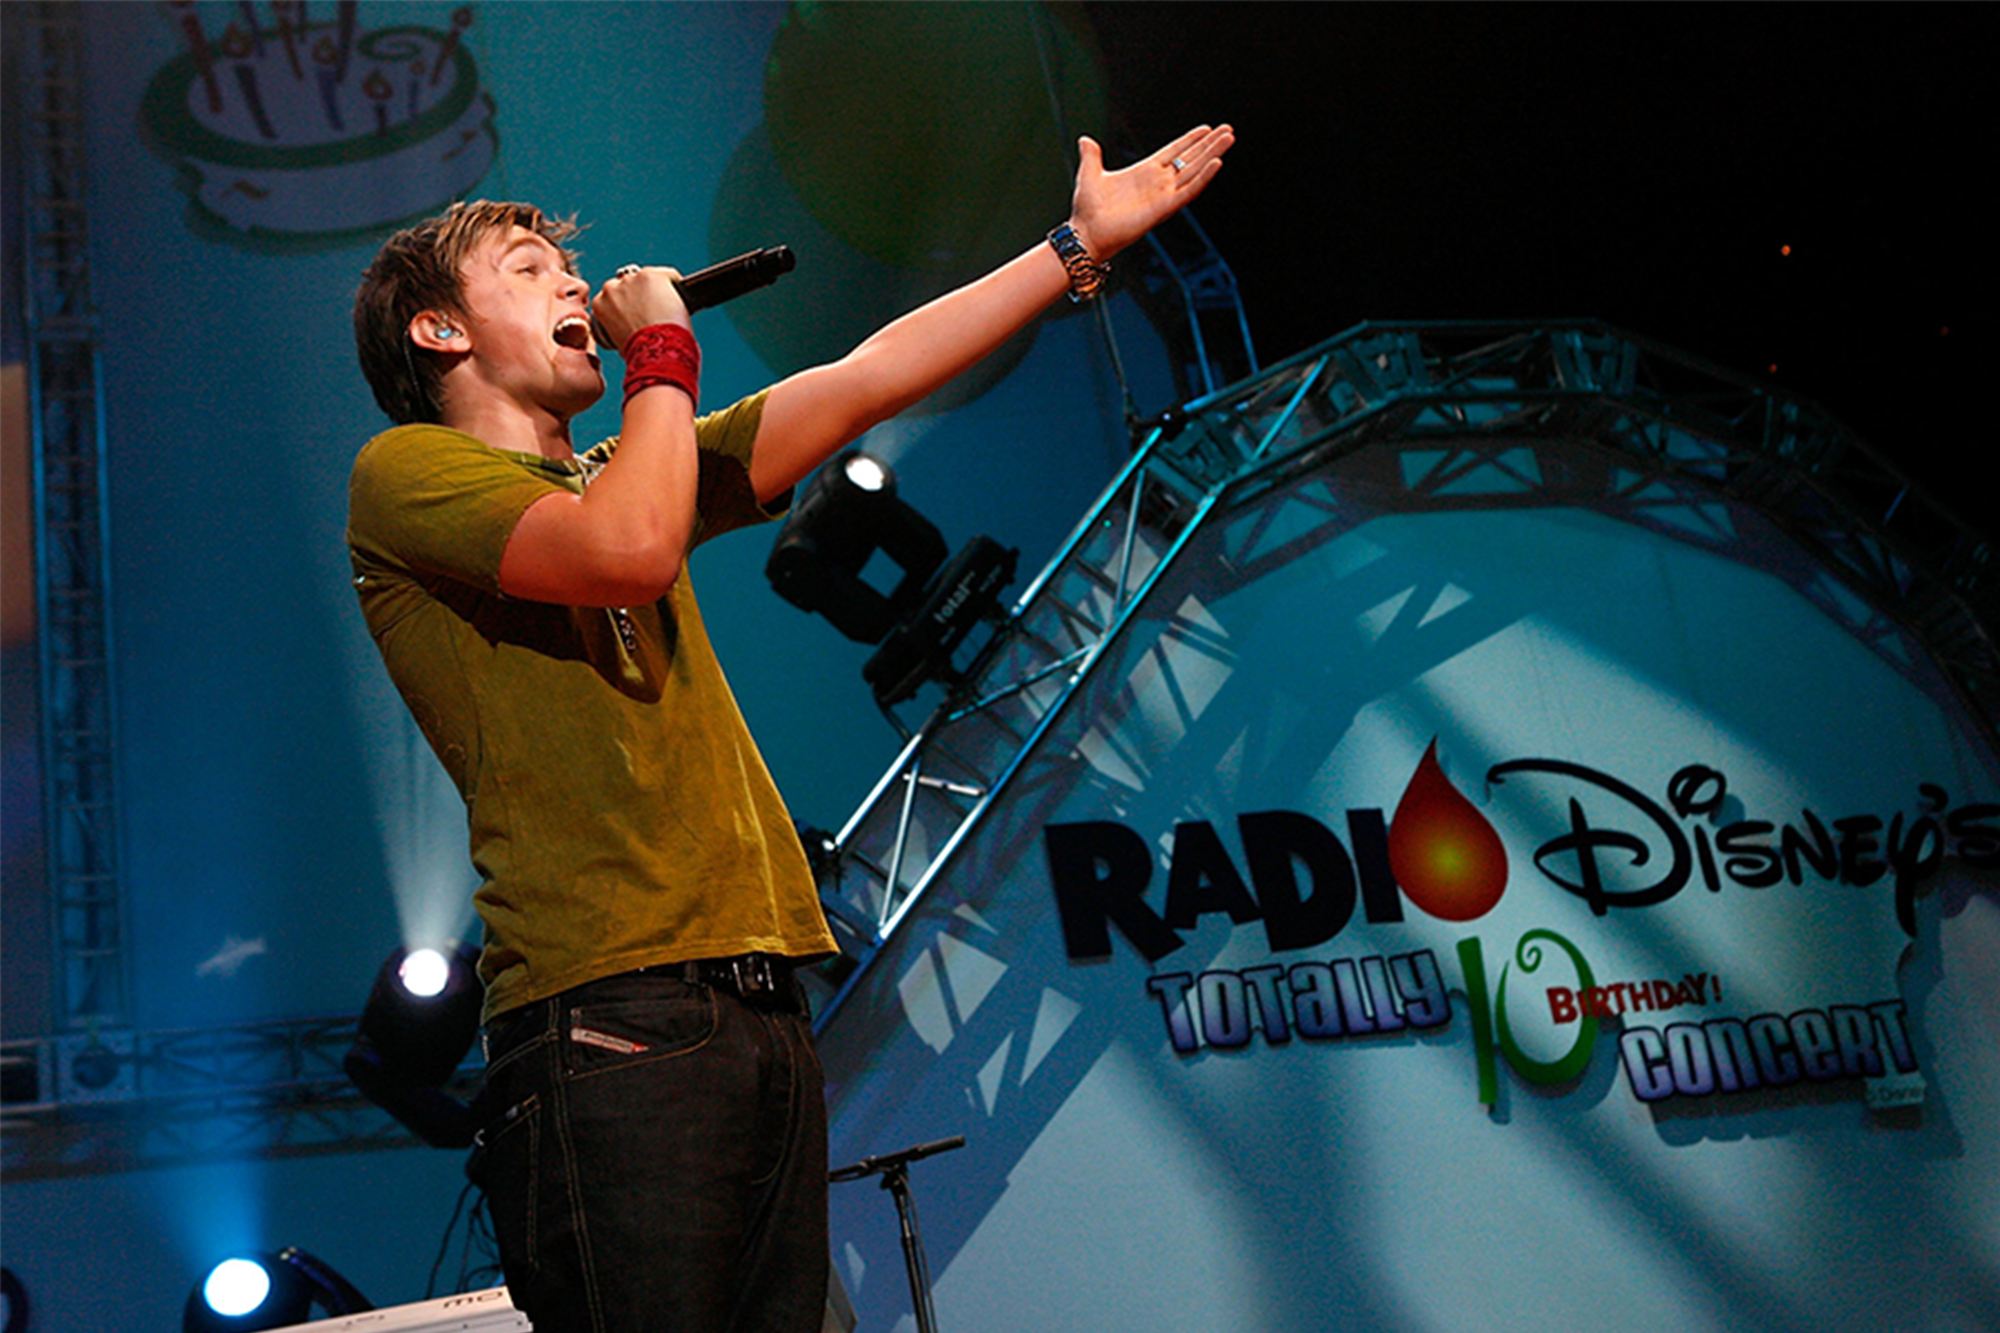 Radio Disney leaving the airwaves in 2021